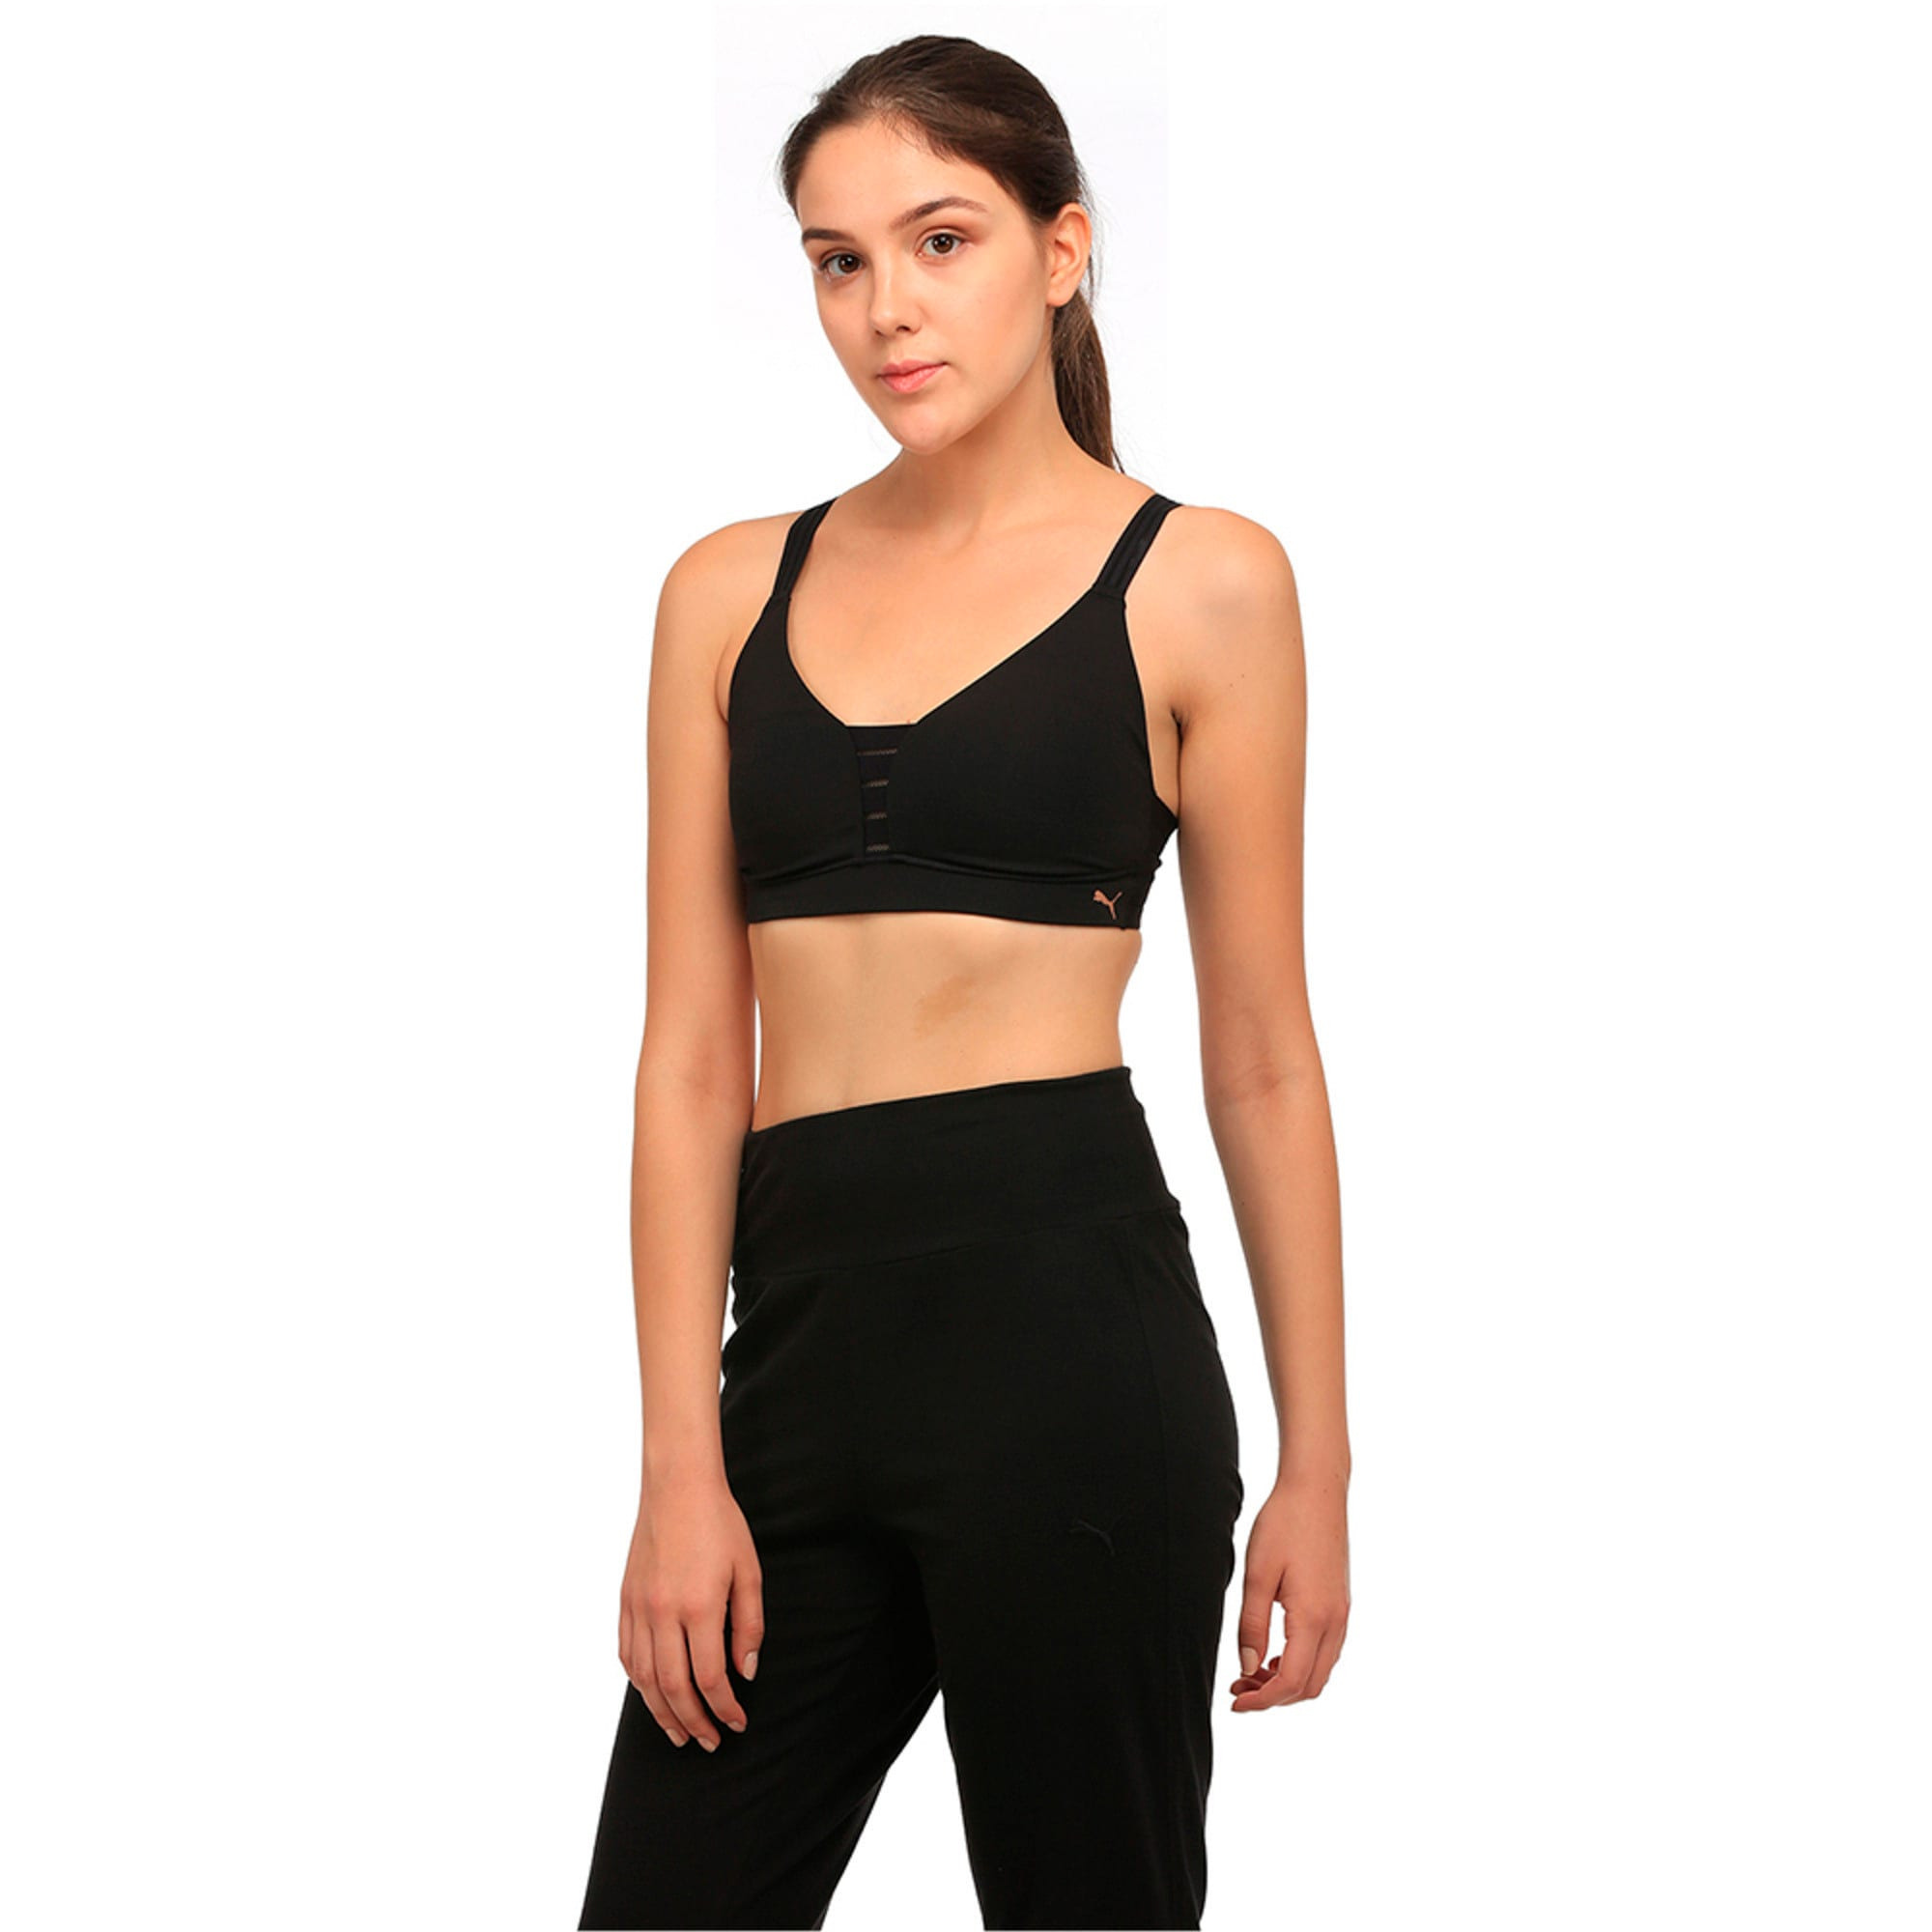 Thumbnail 2 of Training Women's Yogini Show Off Bra Top, Puma Black, medium-IND